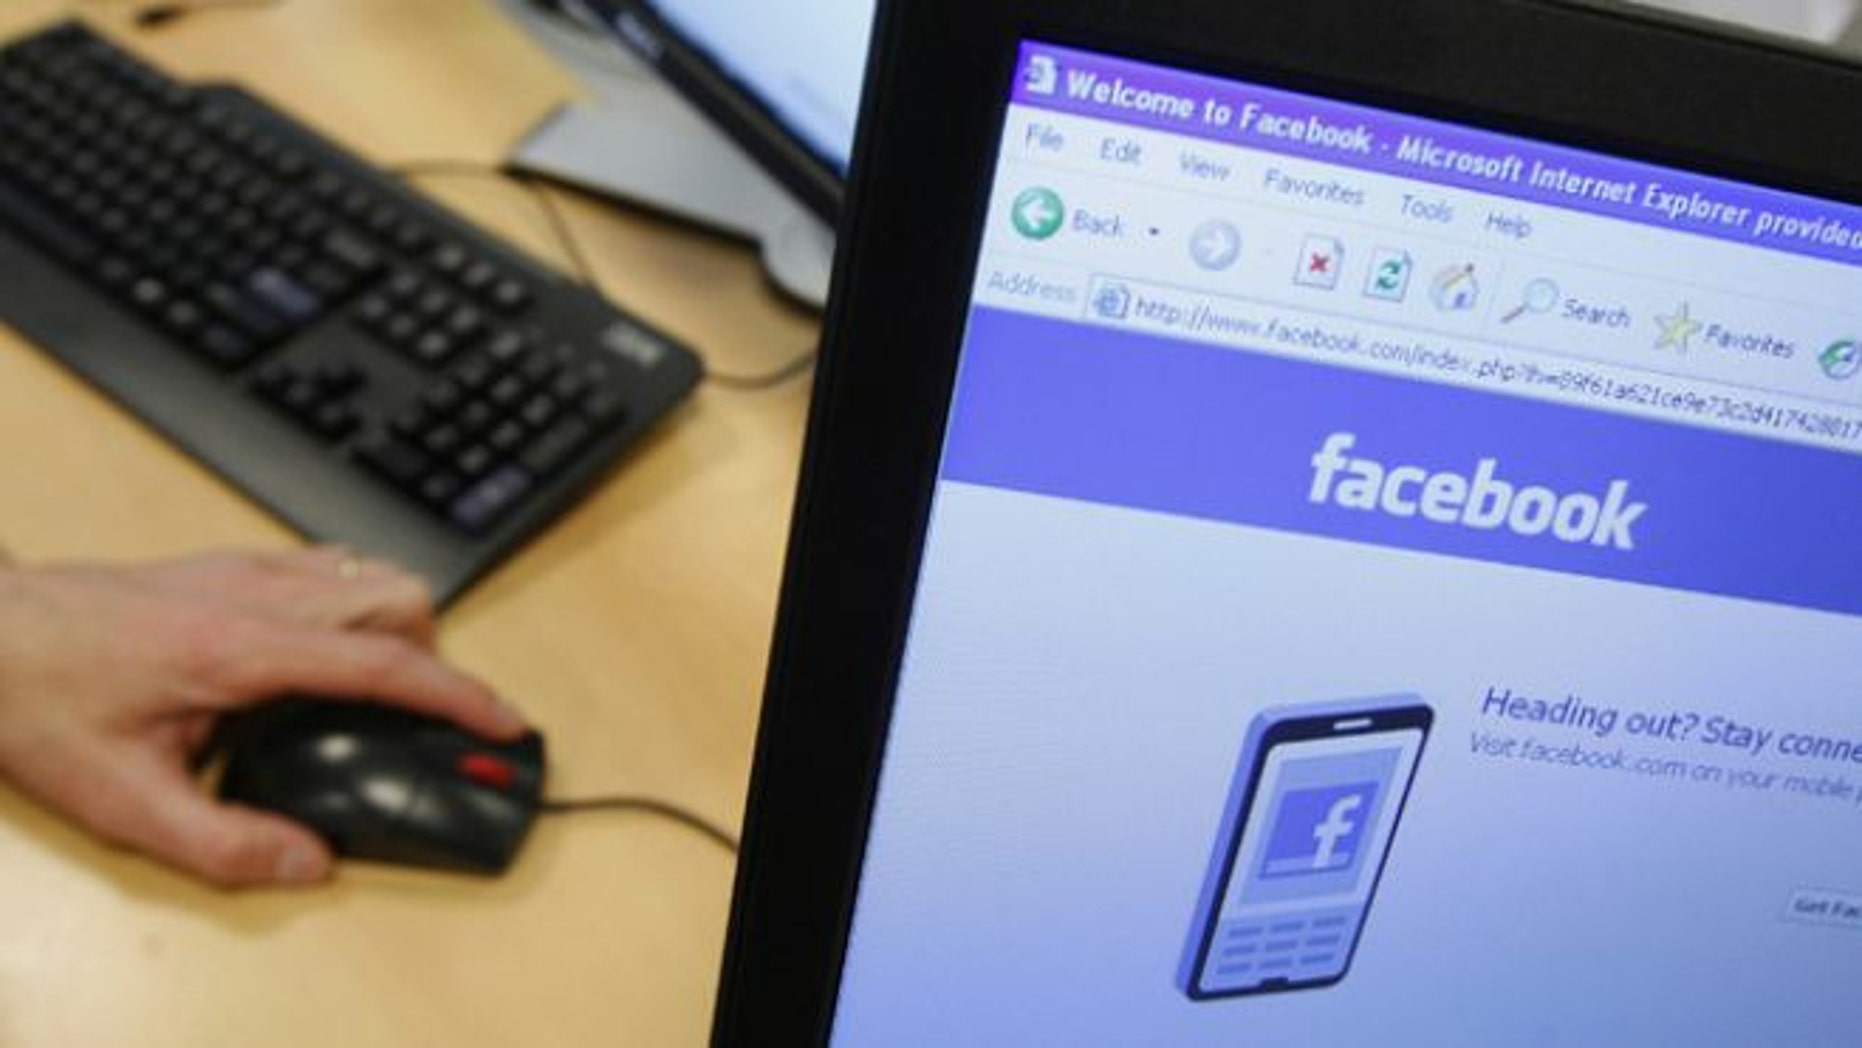 Are you your Facebook profile page?